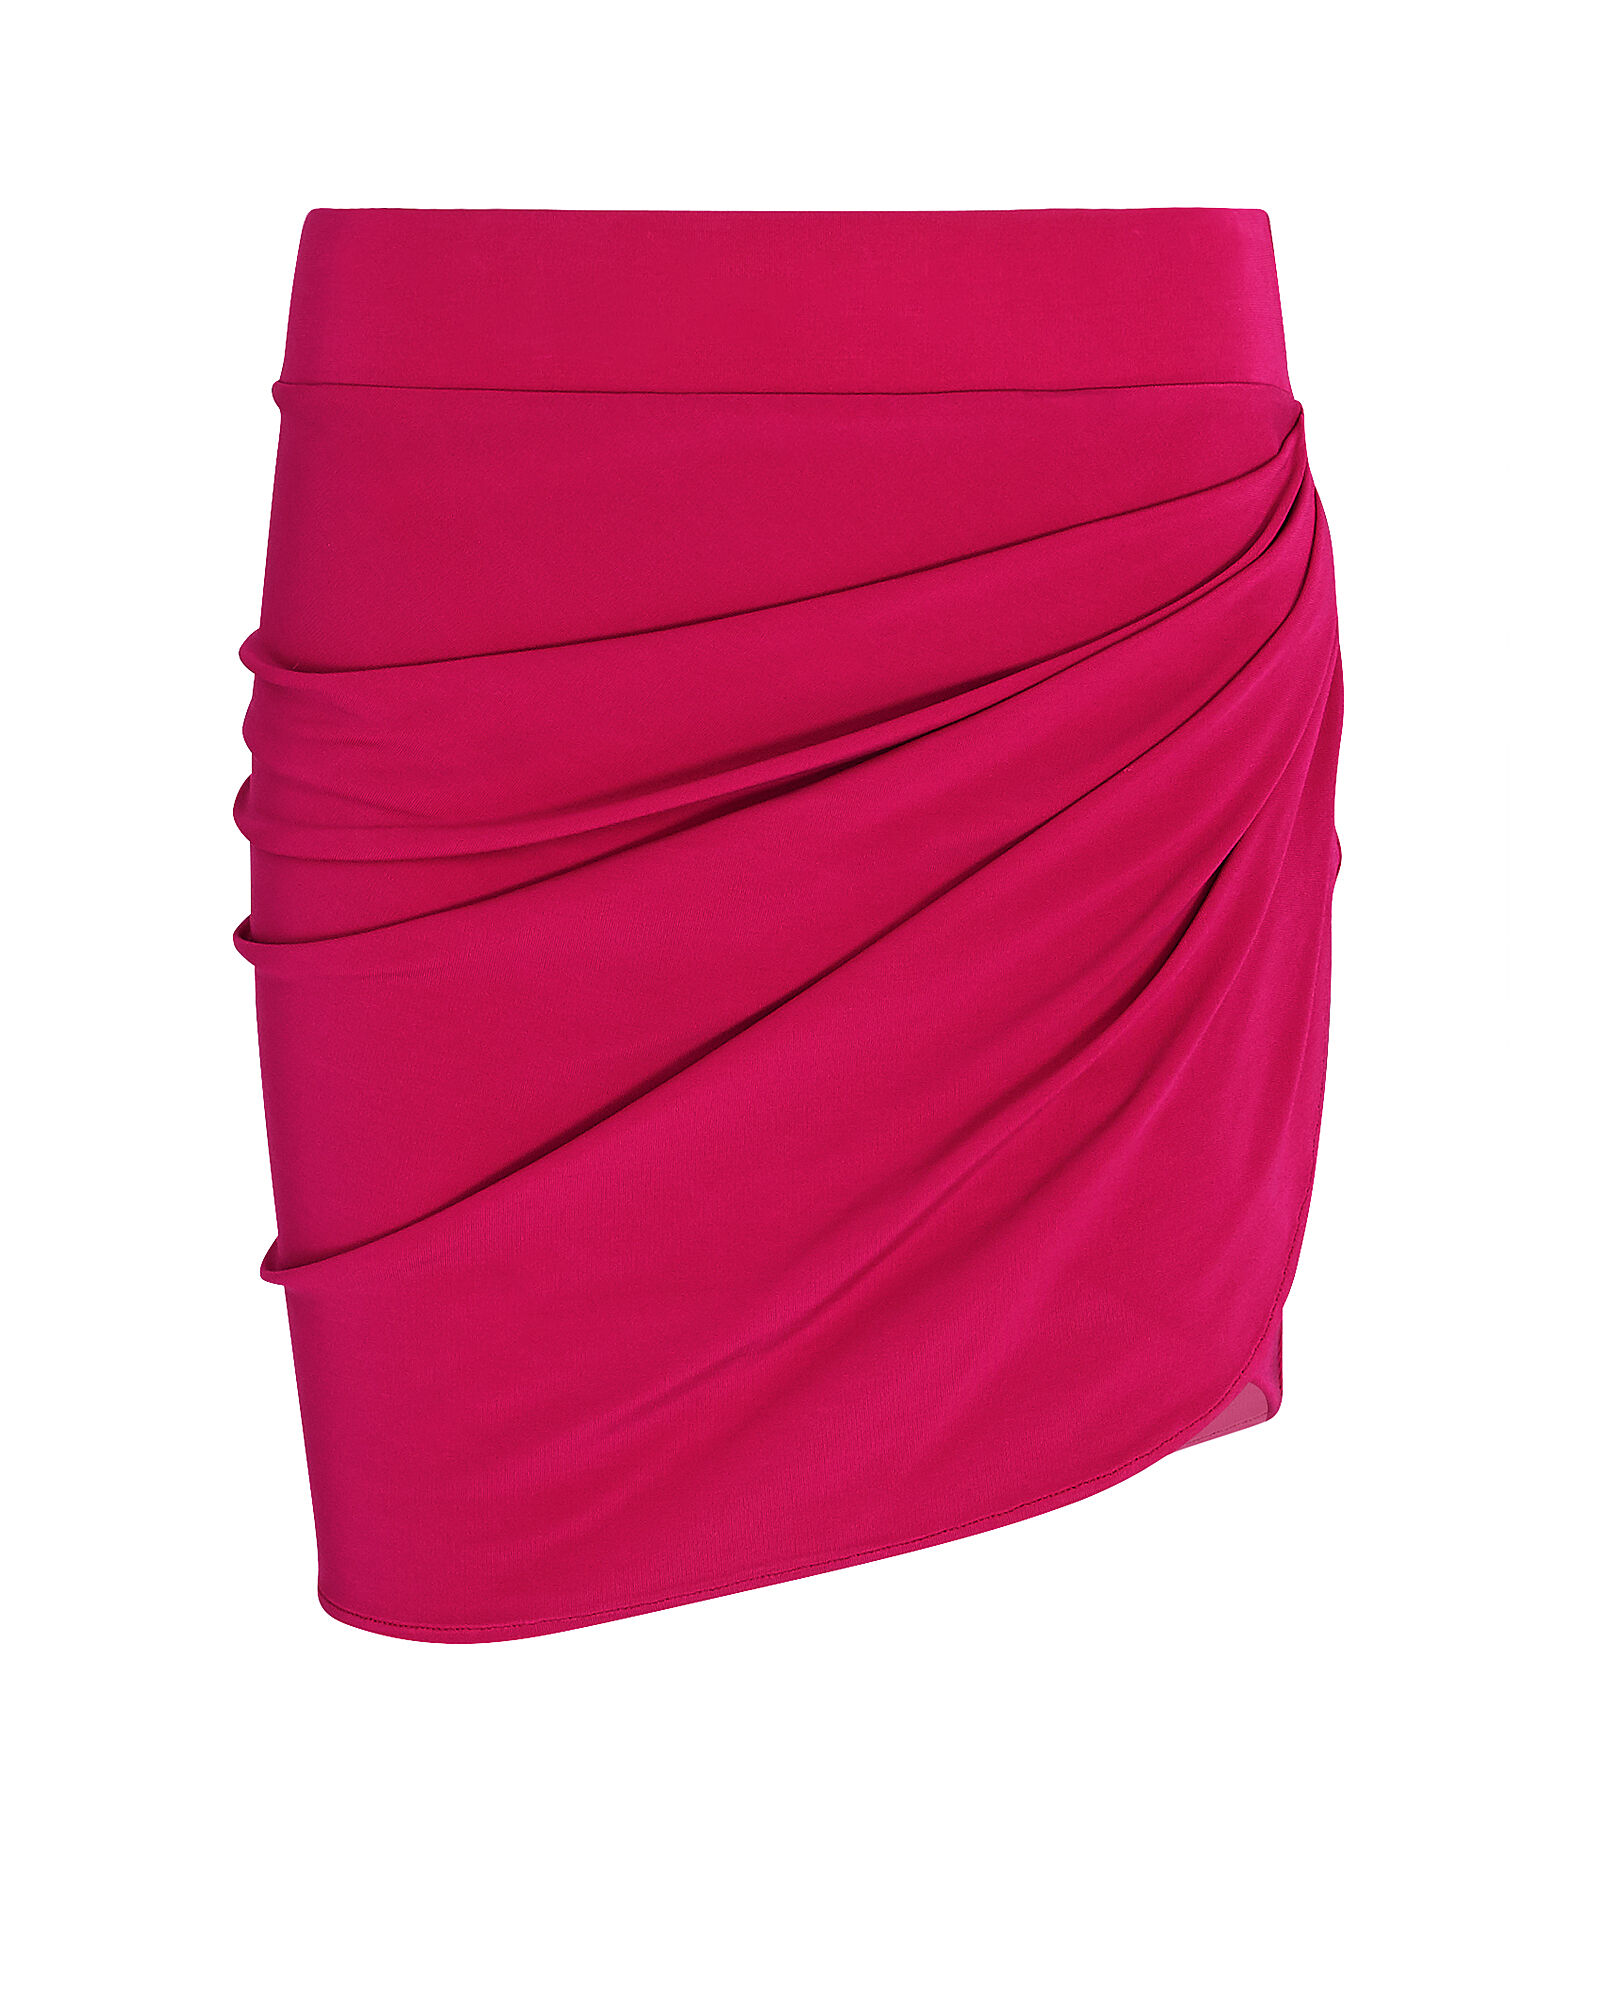 Cherson Velvet Mini Wrap Skirt, PINK, hi-res